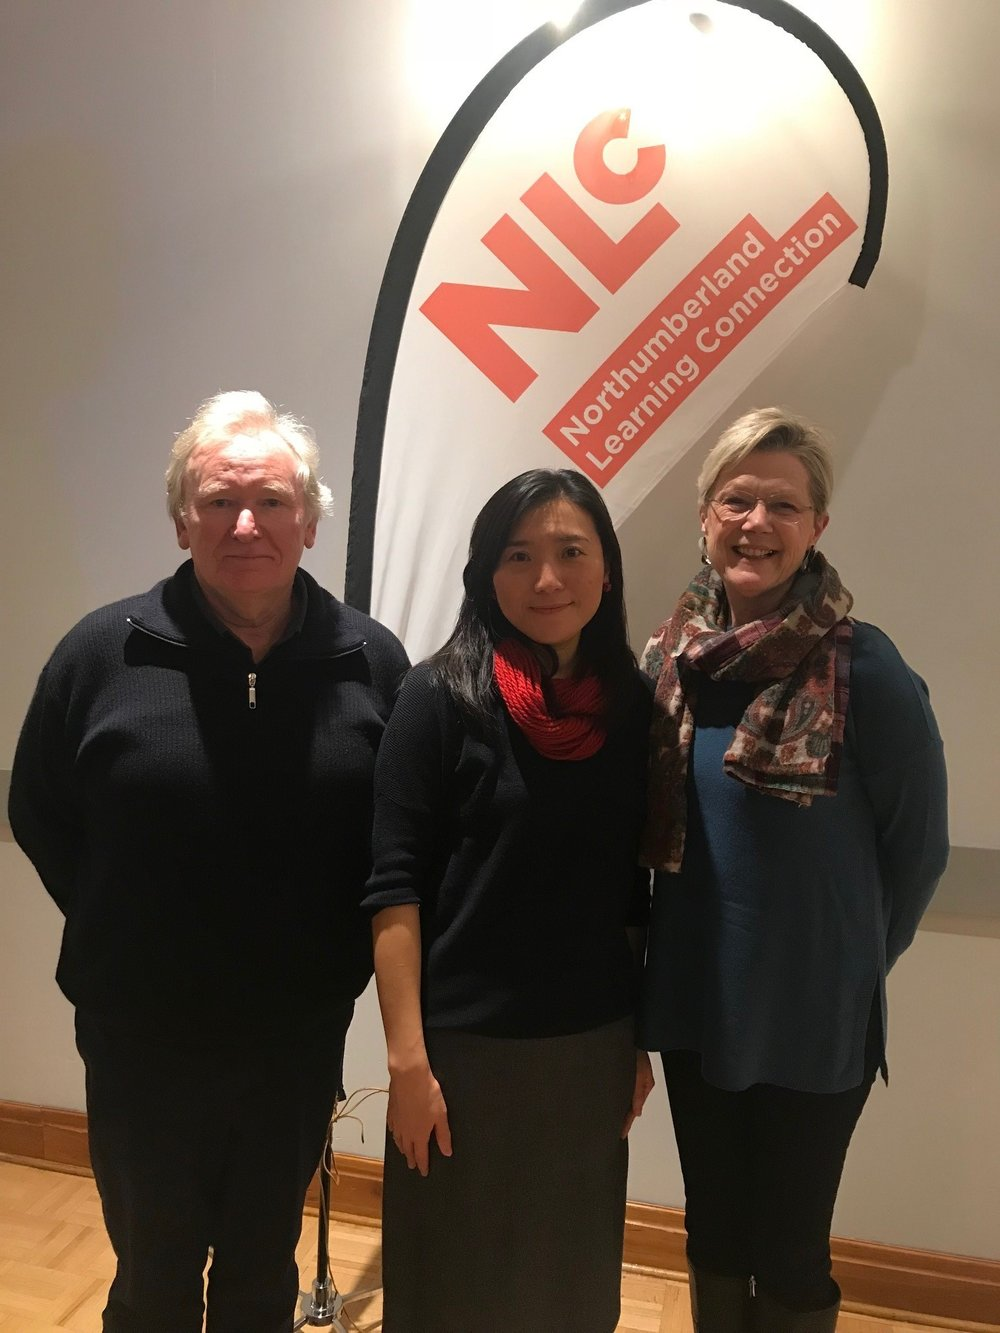 Evi Gu with NLC Board member Andrew Gregg and Founder Joanne Bonebakker